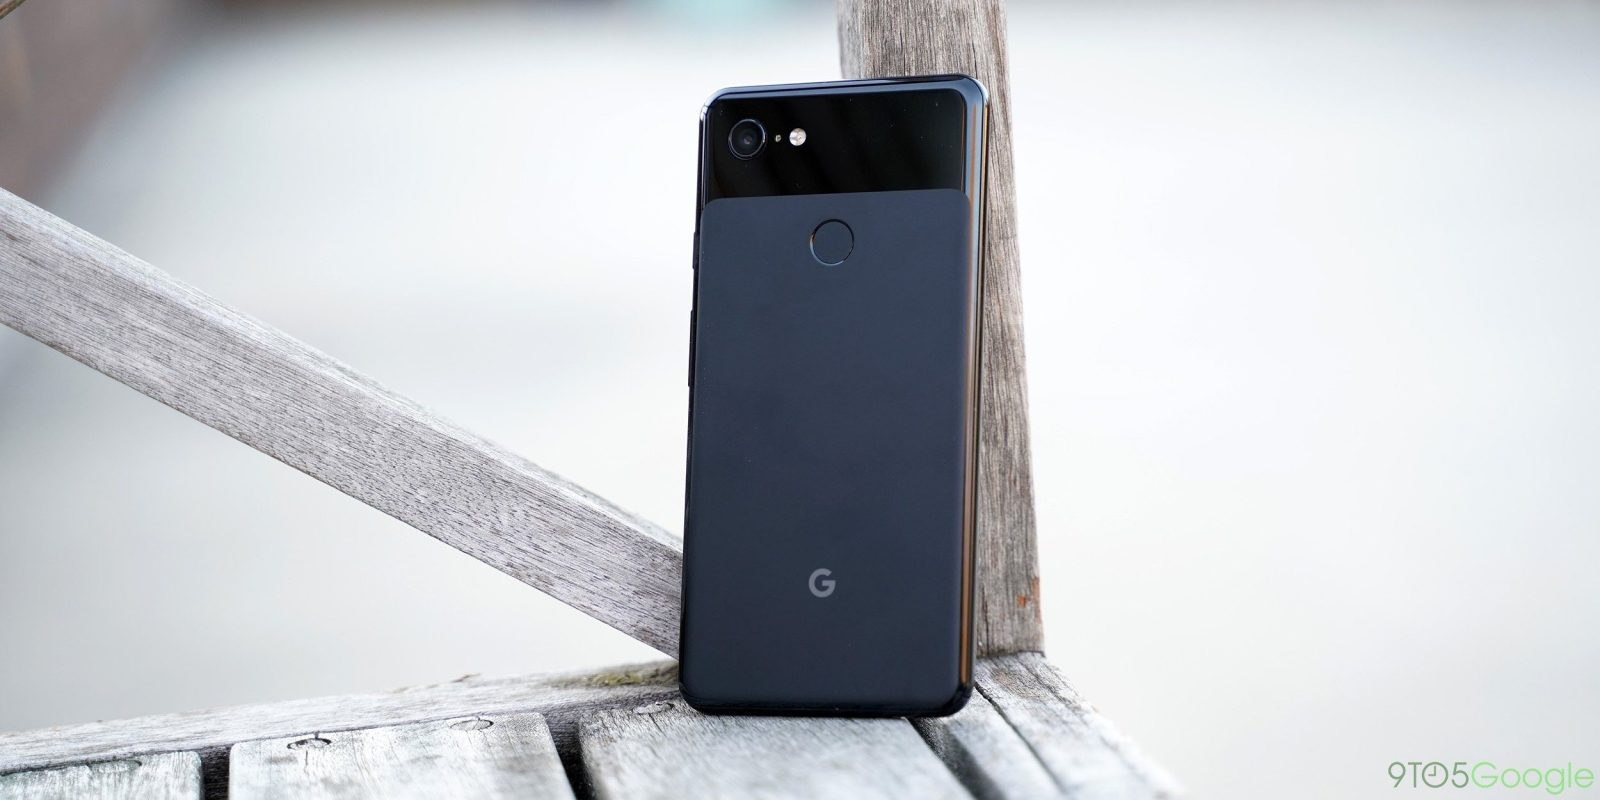 Google Pixel 3/XL is down to $500 in certified refurbished